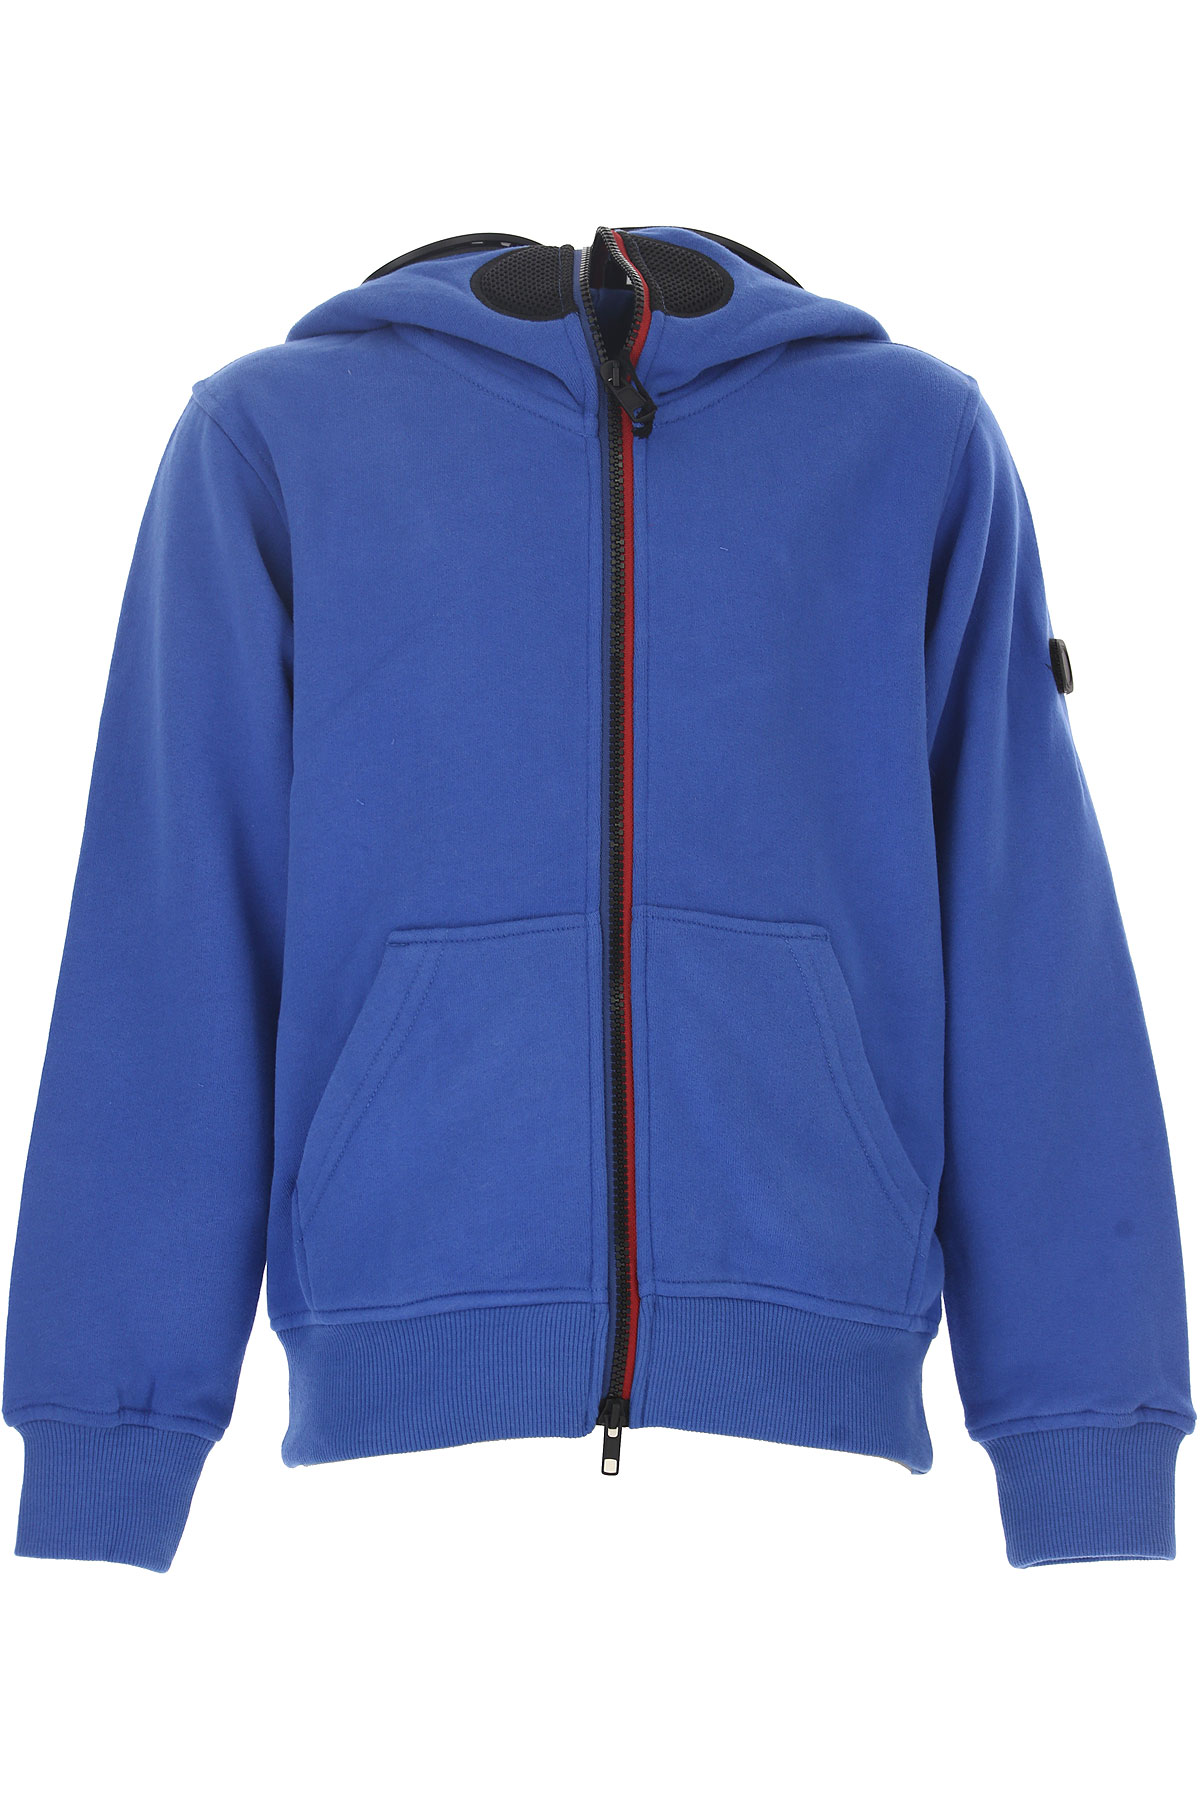 Image of Ai Riders On The Storm Kids Sweatshirts & Hoodies for Boys On Sale in Outlet, Royal Blue, Cotton, 2017, 4Y 8Y